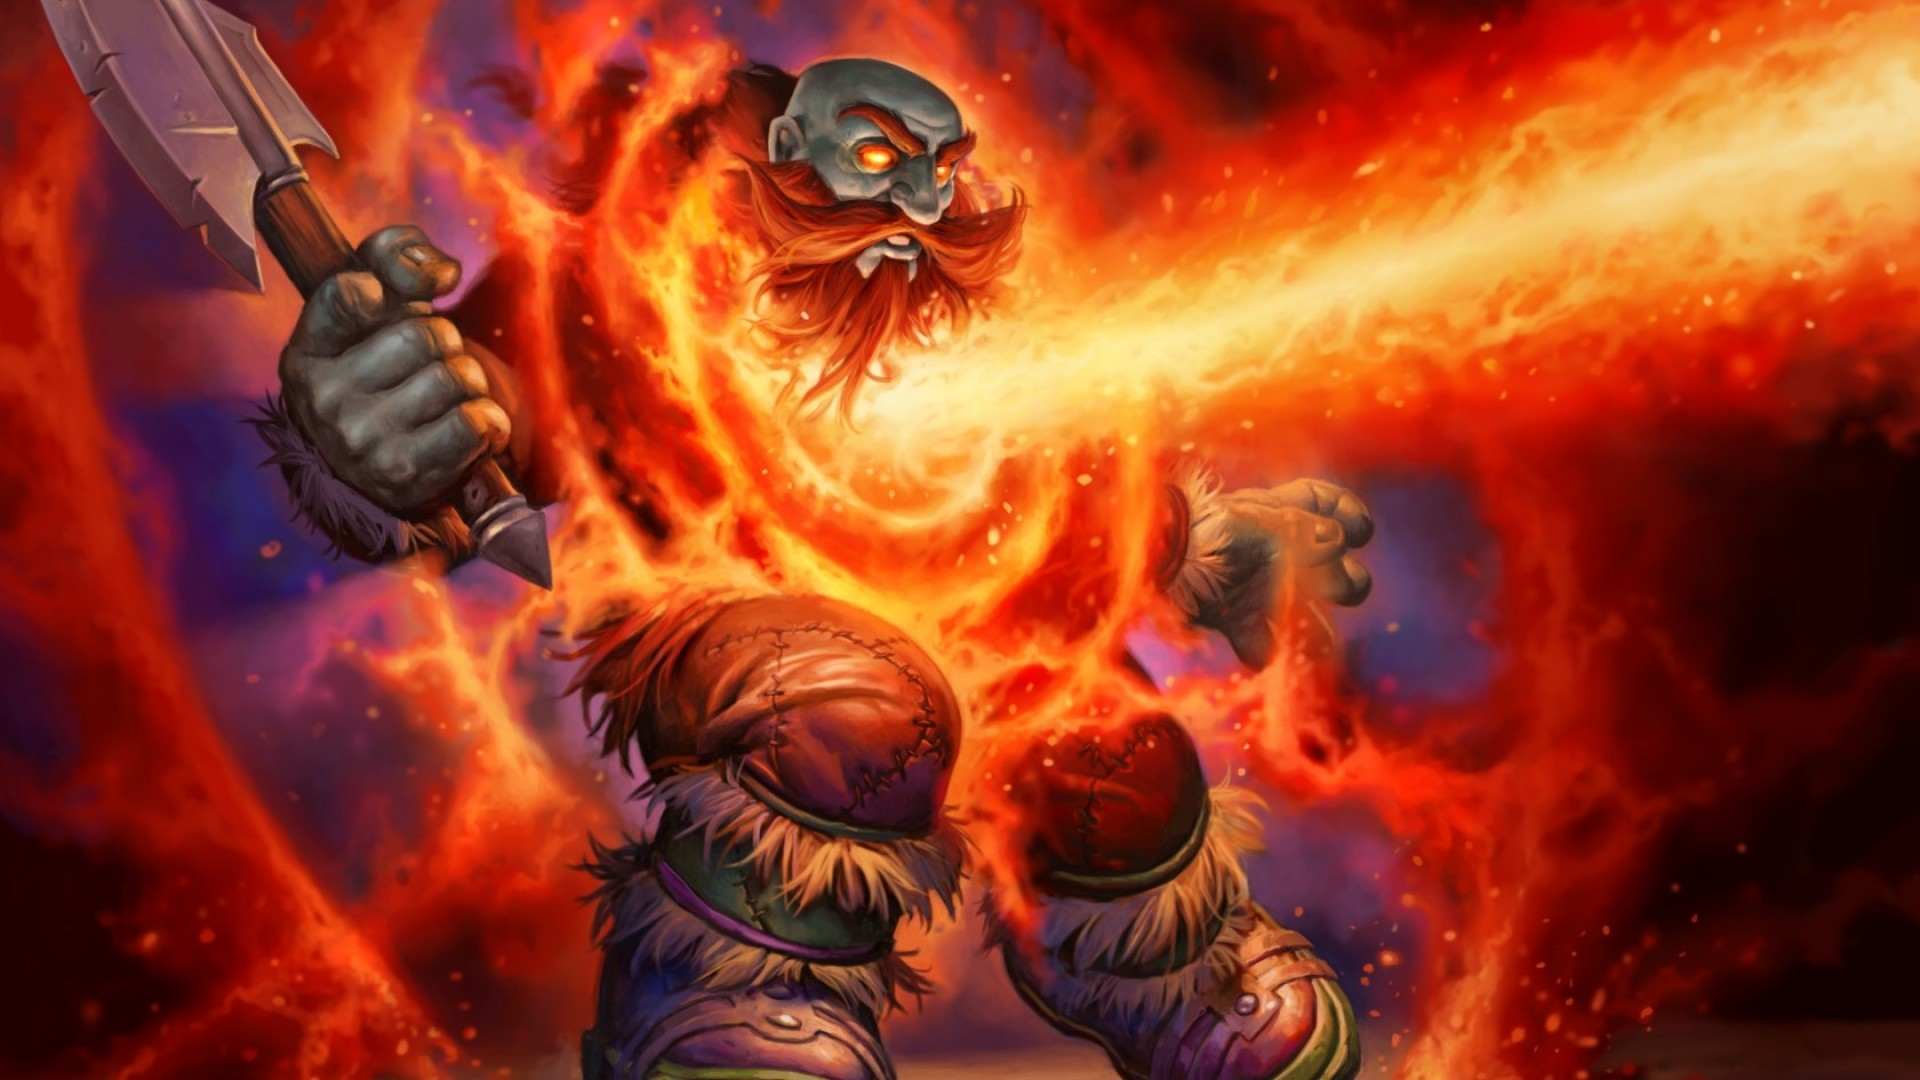 1920x1080 Preview wallpaper world of warcraft, hearthstone, blackrock mountain,  dwarf, ax